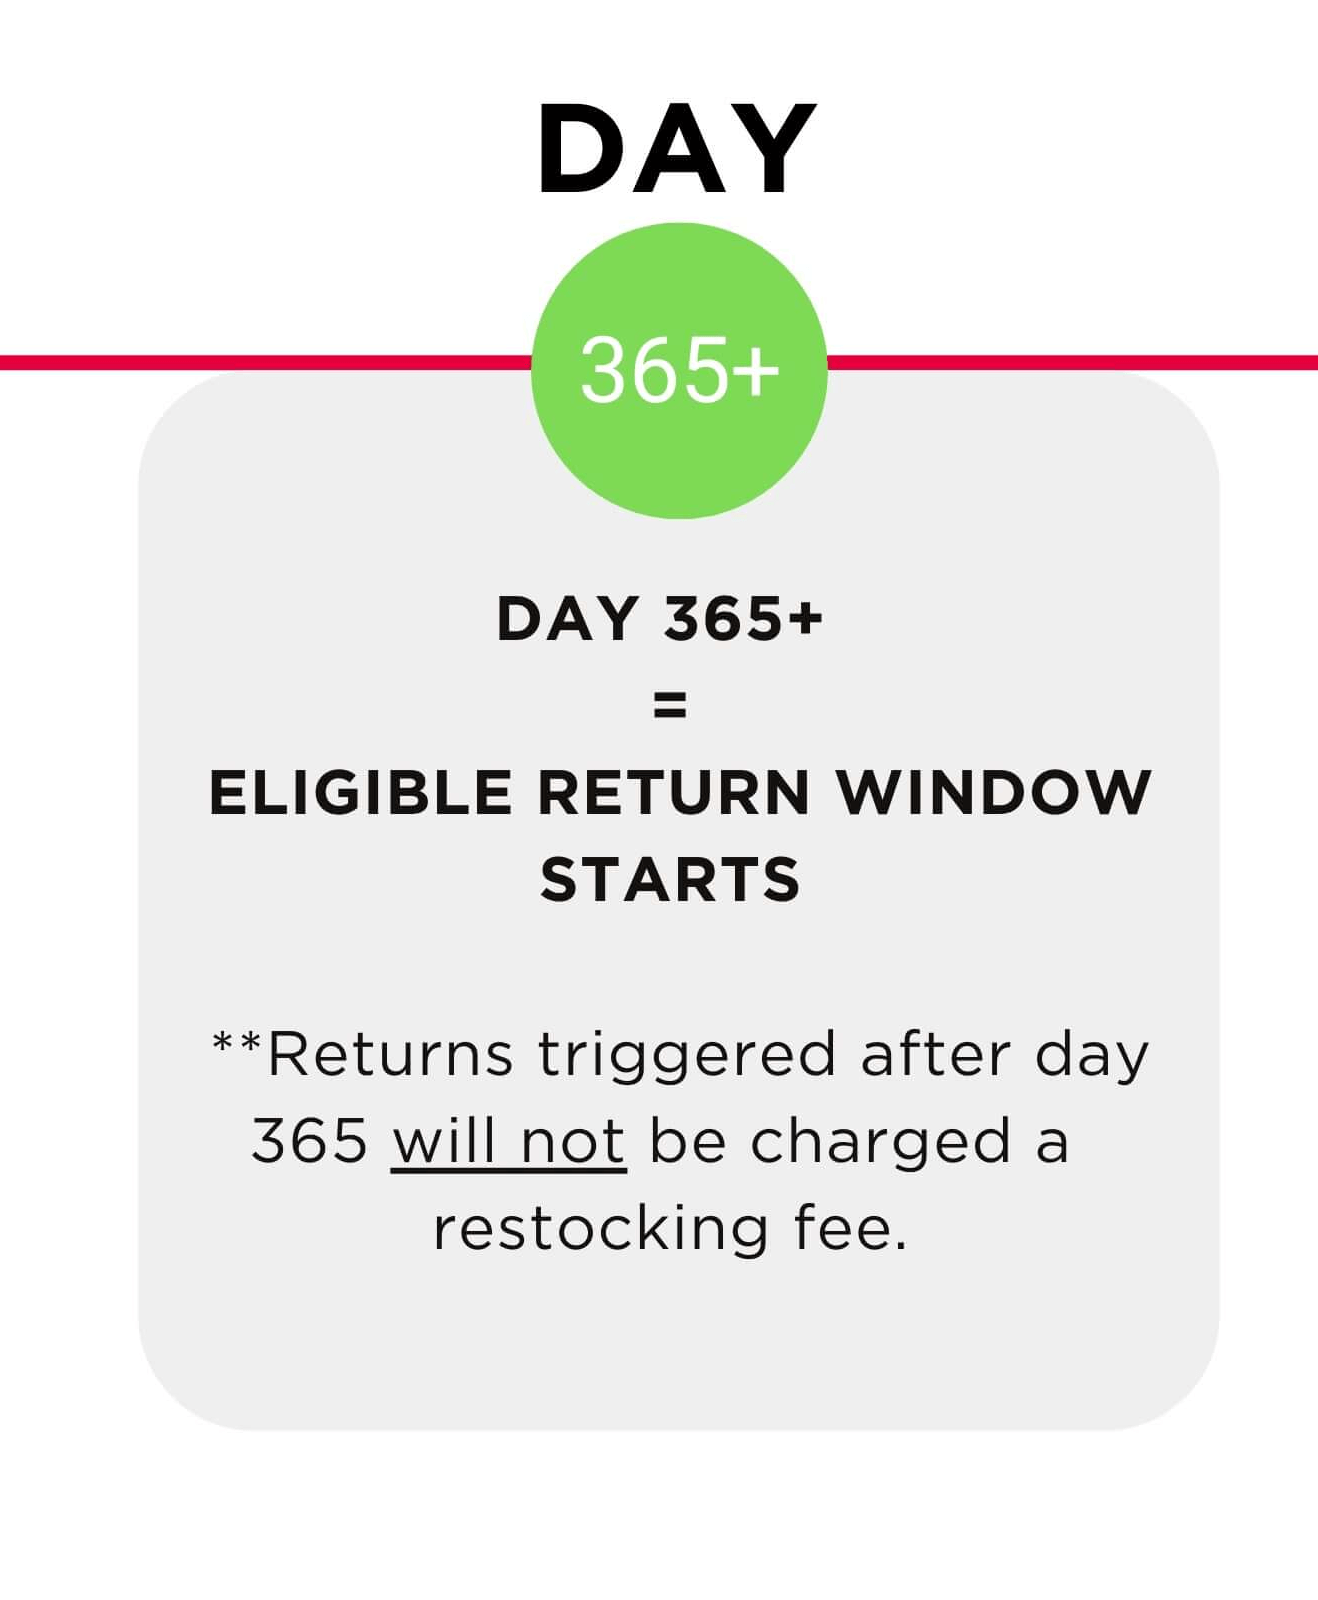 Day 365